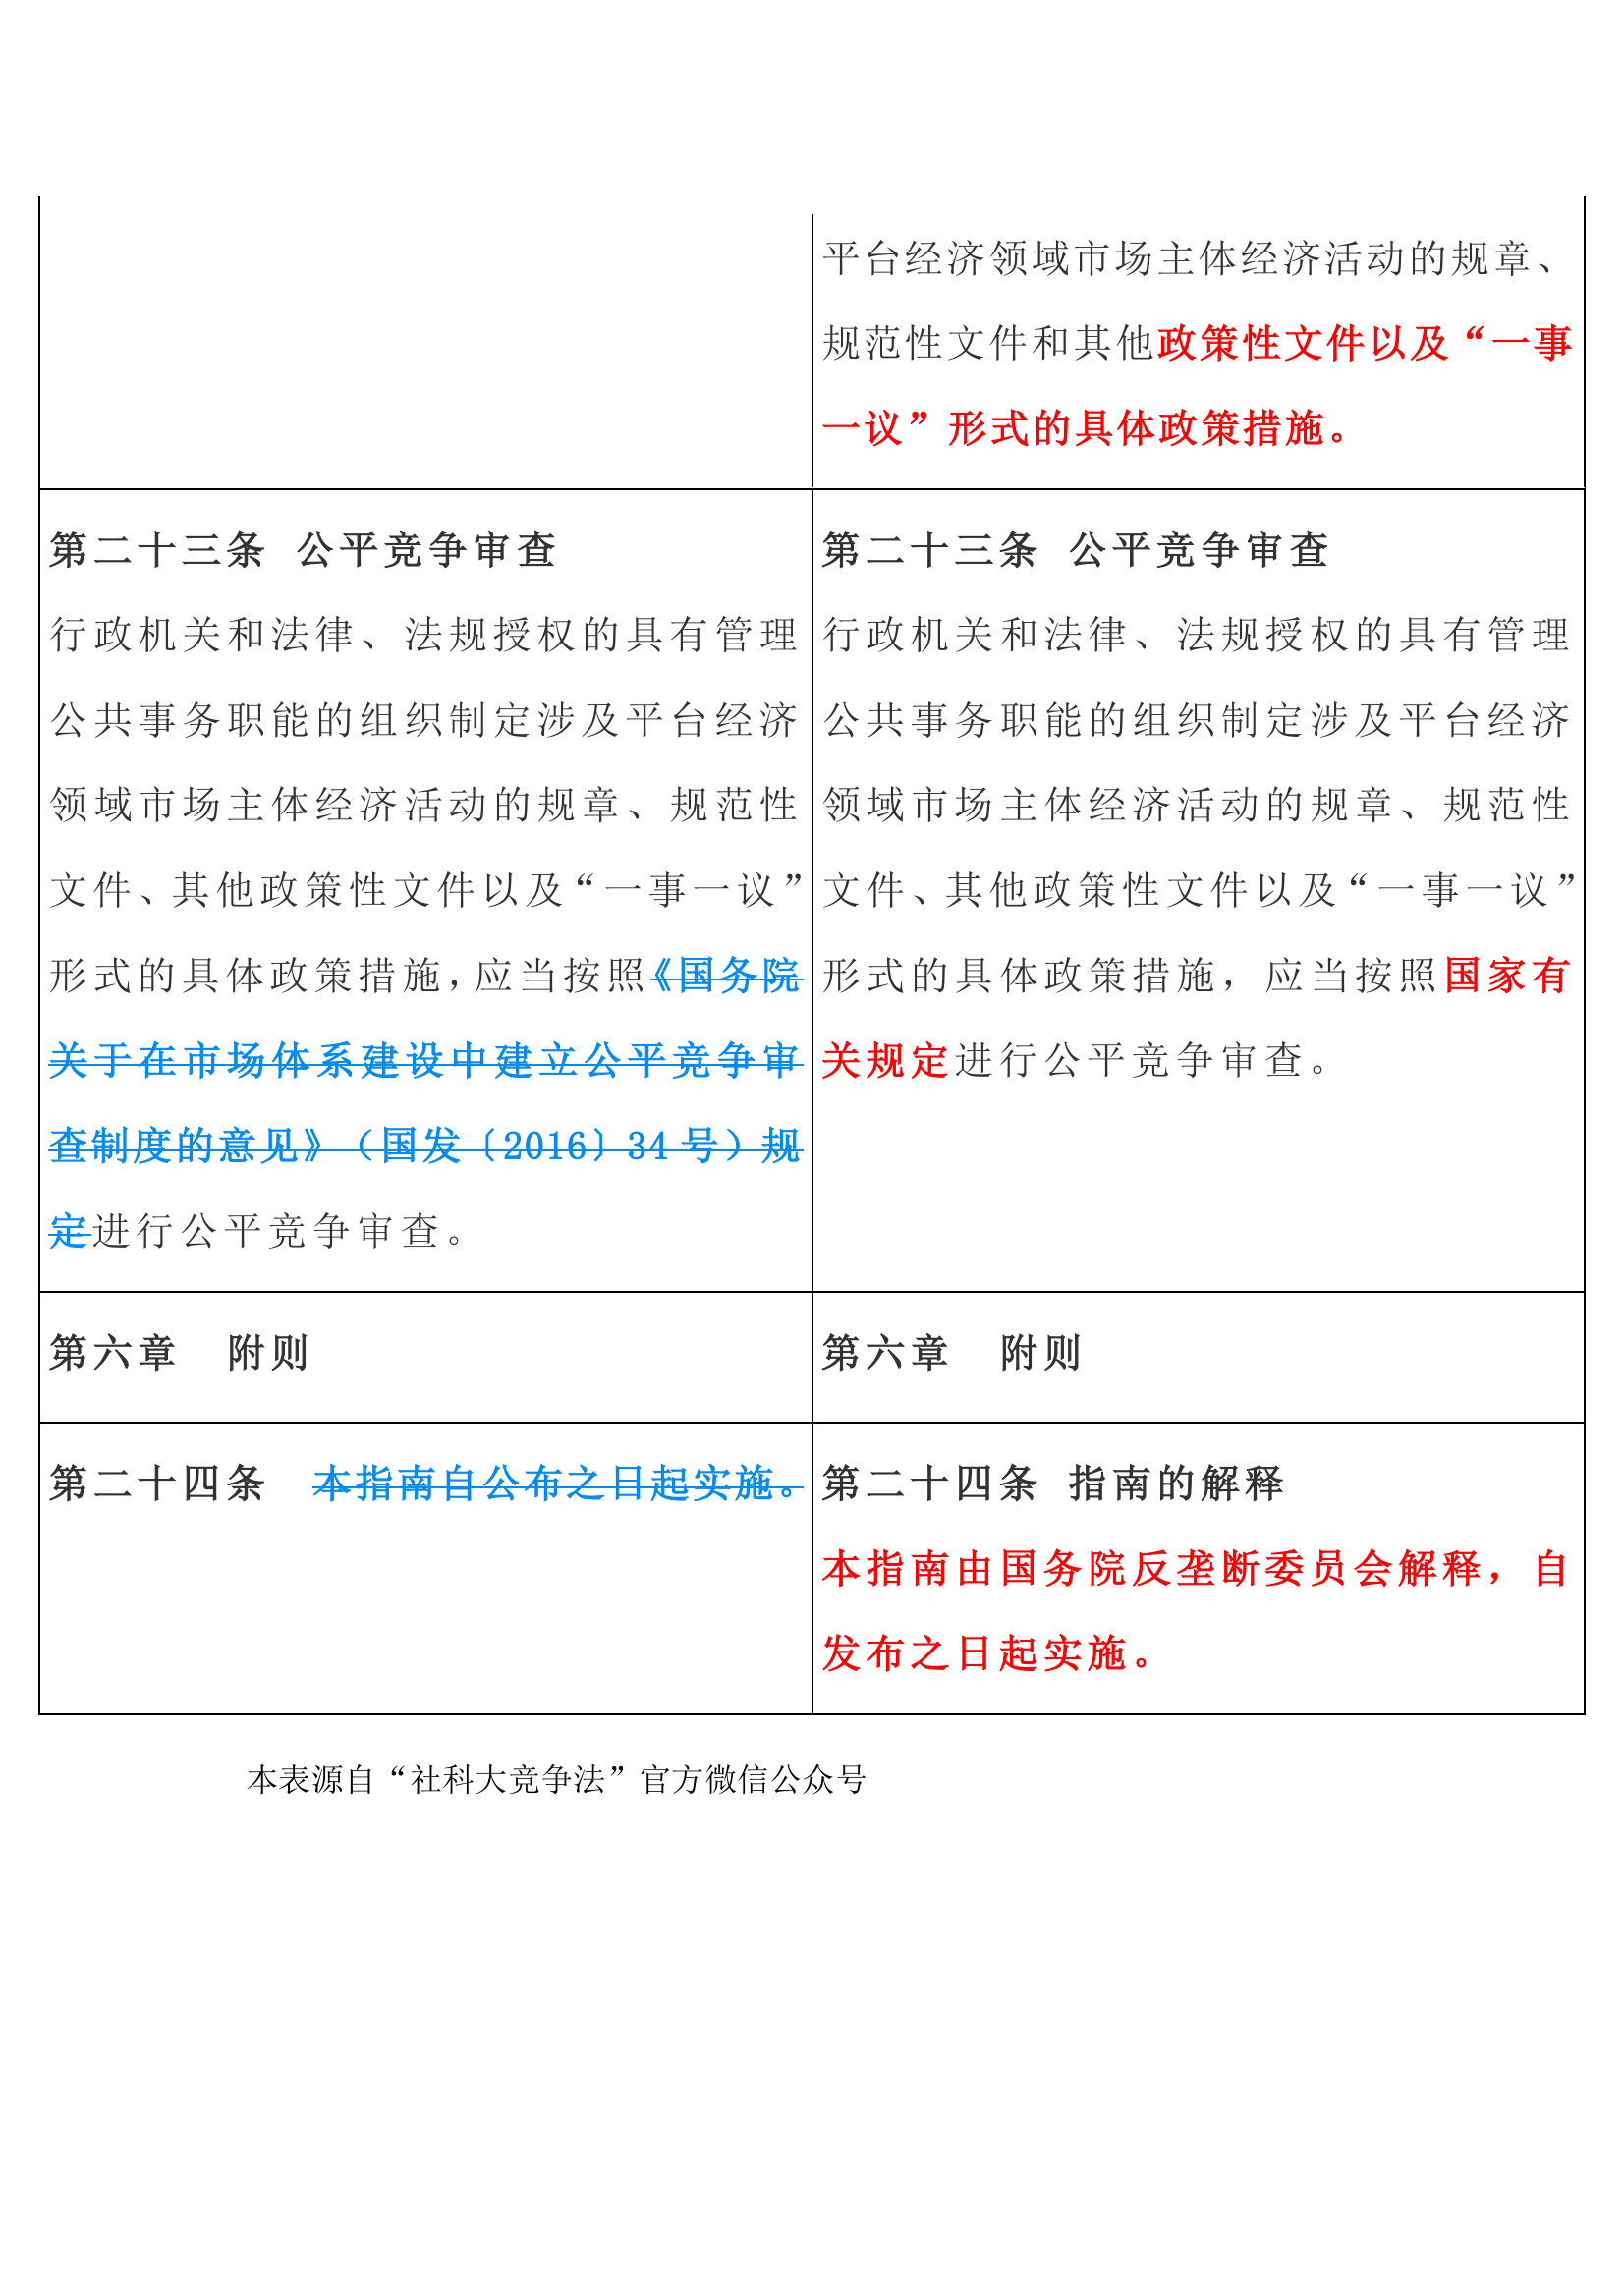 share_pdf_exportpage32(2).png